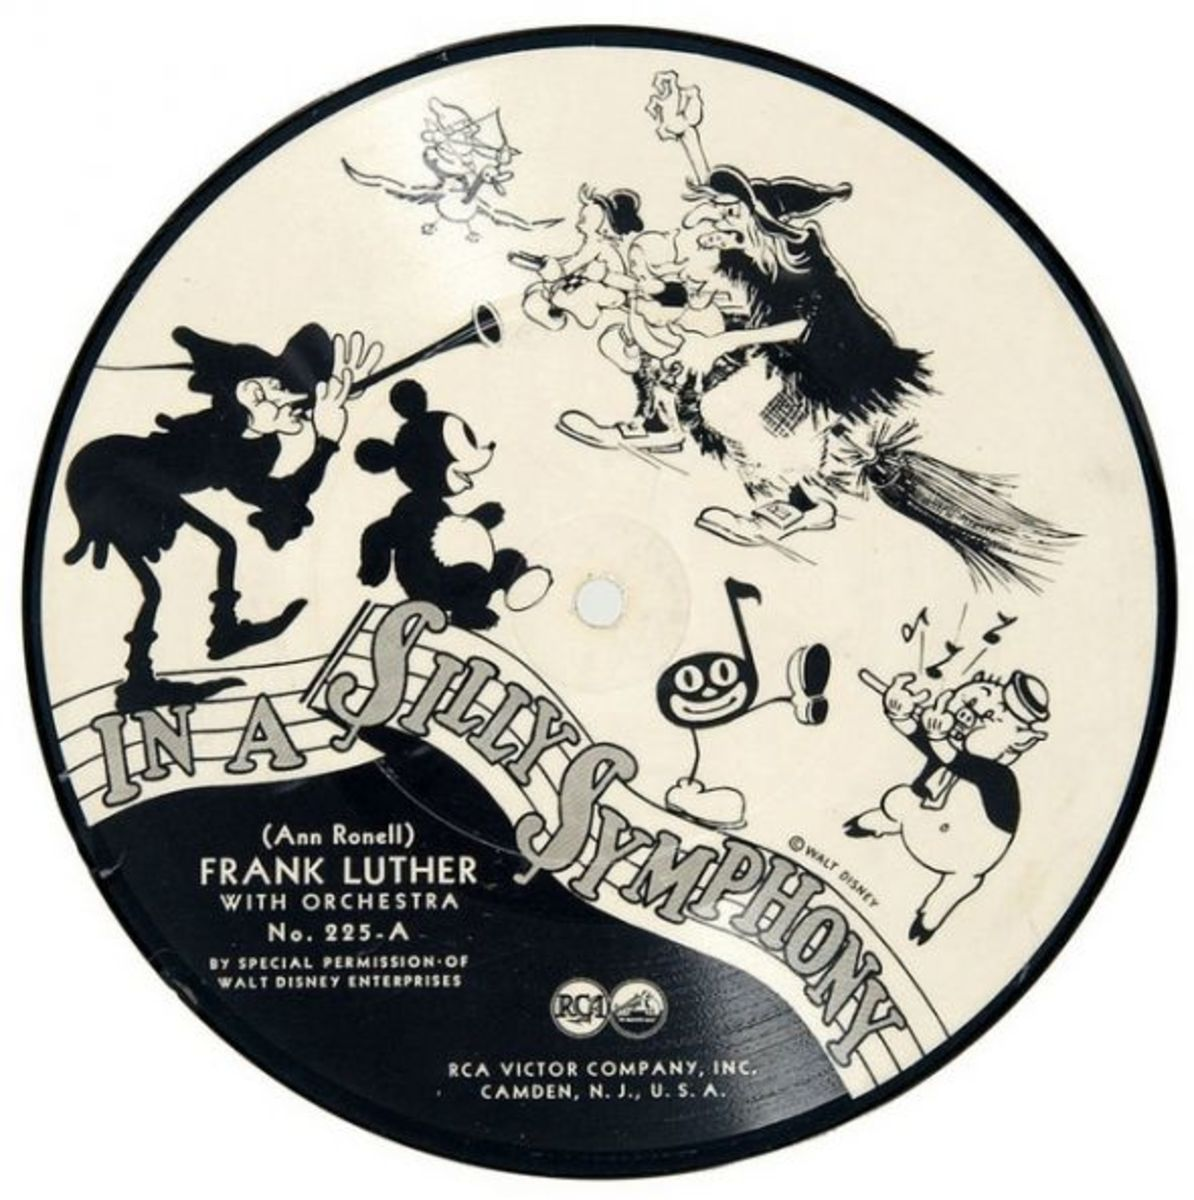 "Frank Luther and His Orchestra ""In A Silly Symphony"" RCA Victor 225-A 7"" 78 rpm Shellac Record Silly Symphony Frank Luther with Orchestra RCA Victor Company 225-A"